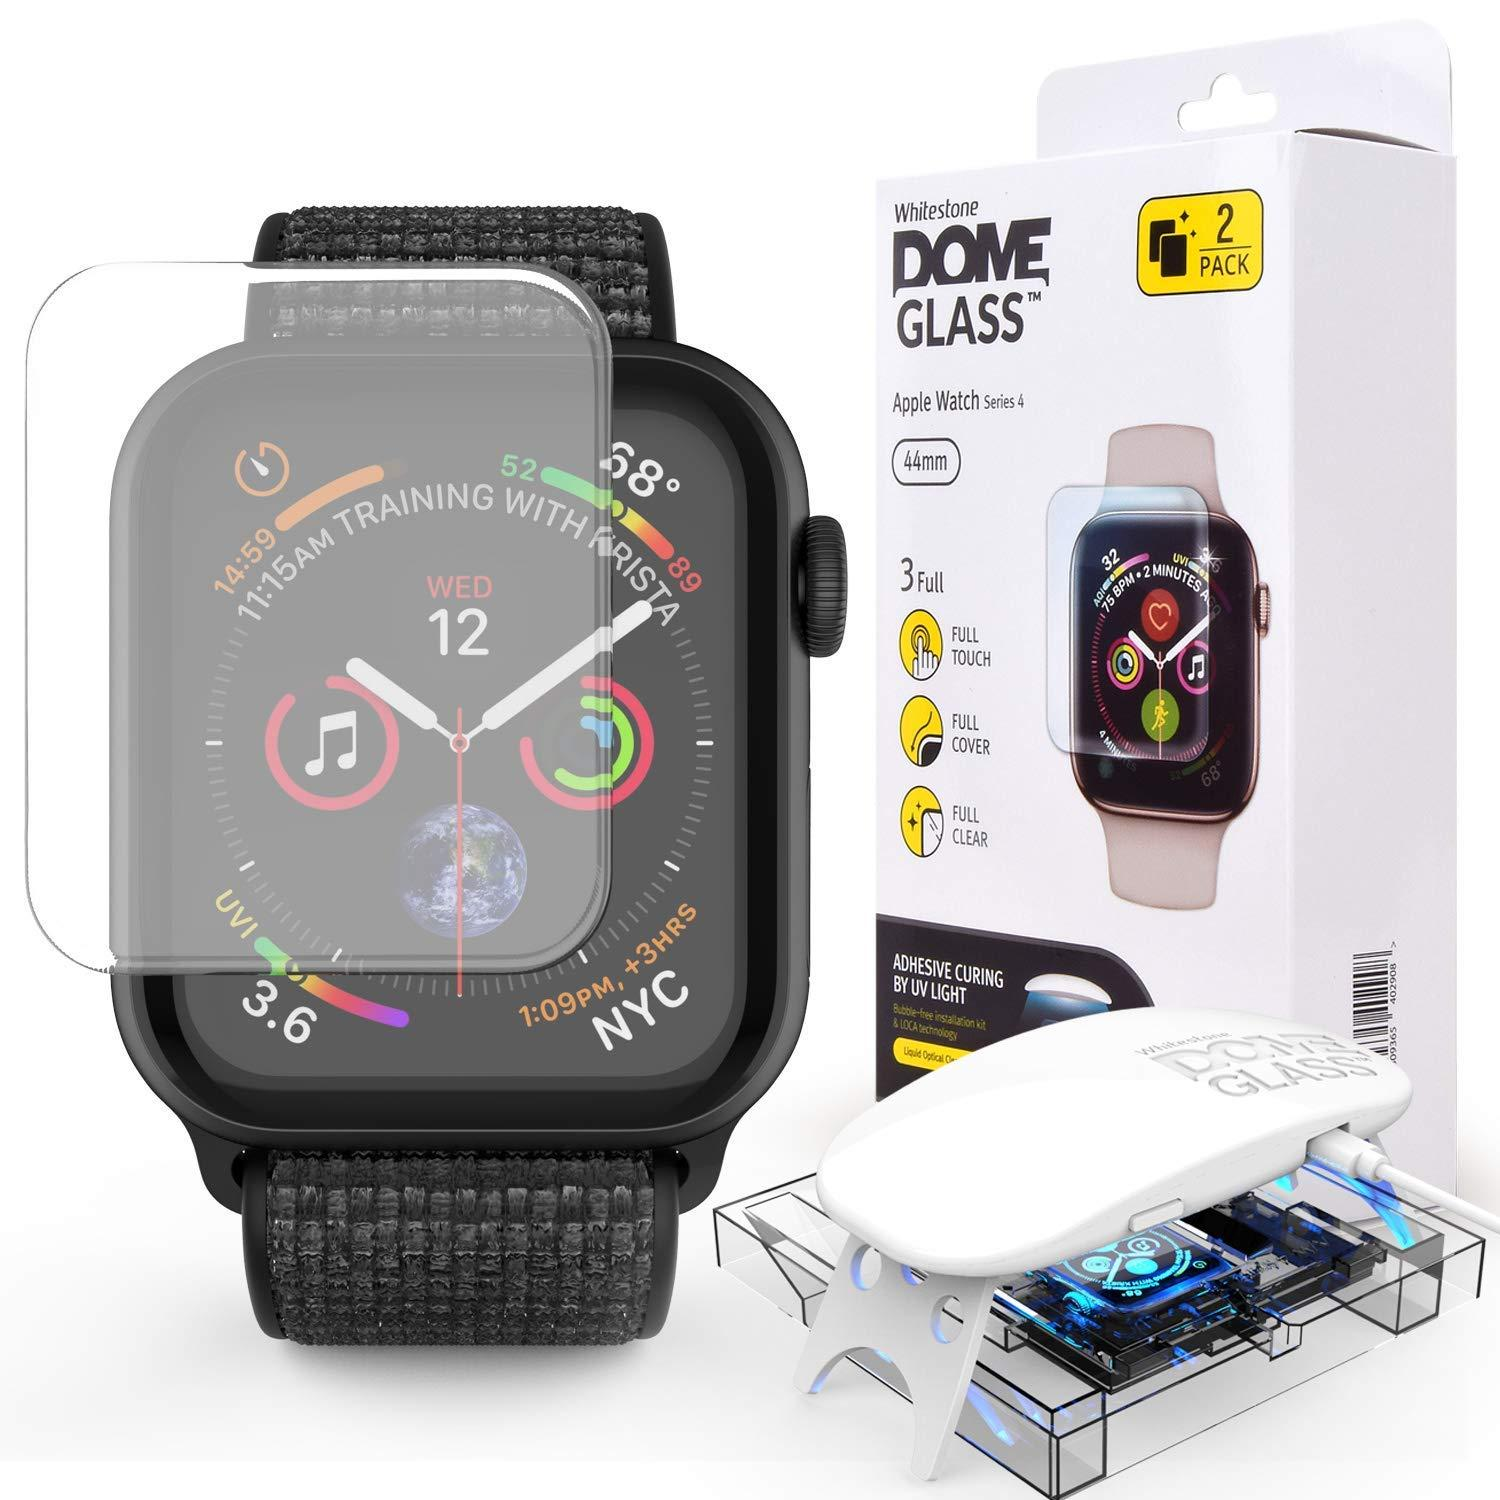 Dome Glass Screen Protector Apple Watch 44mm